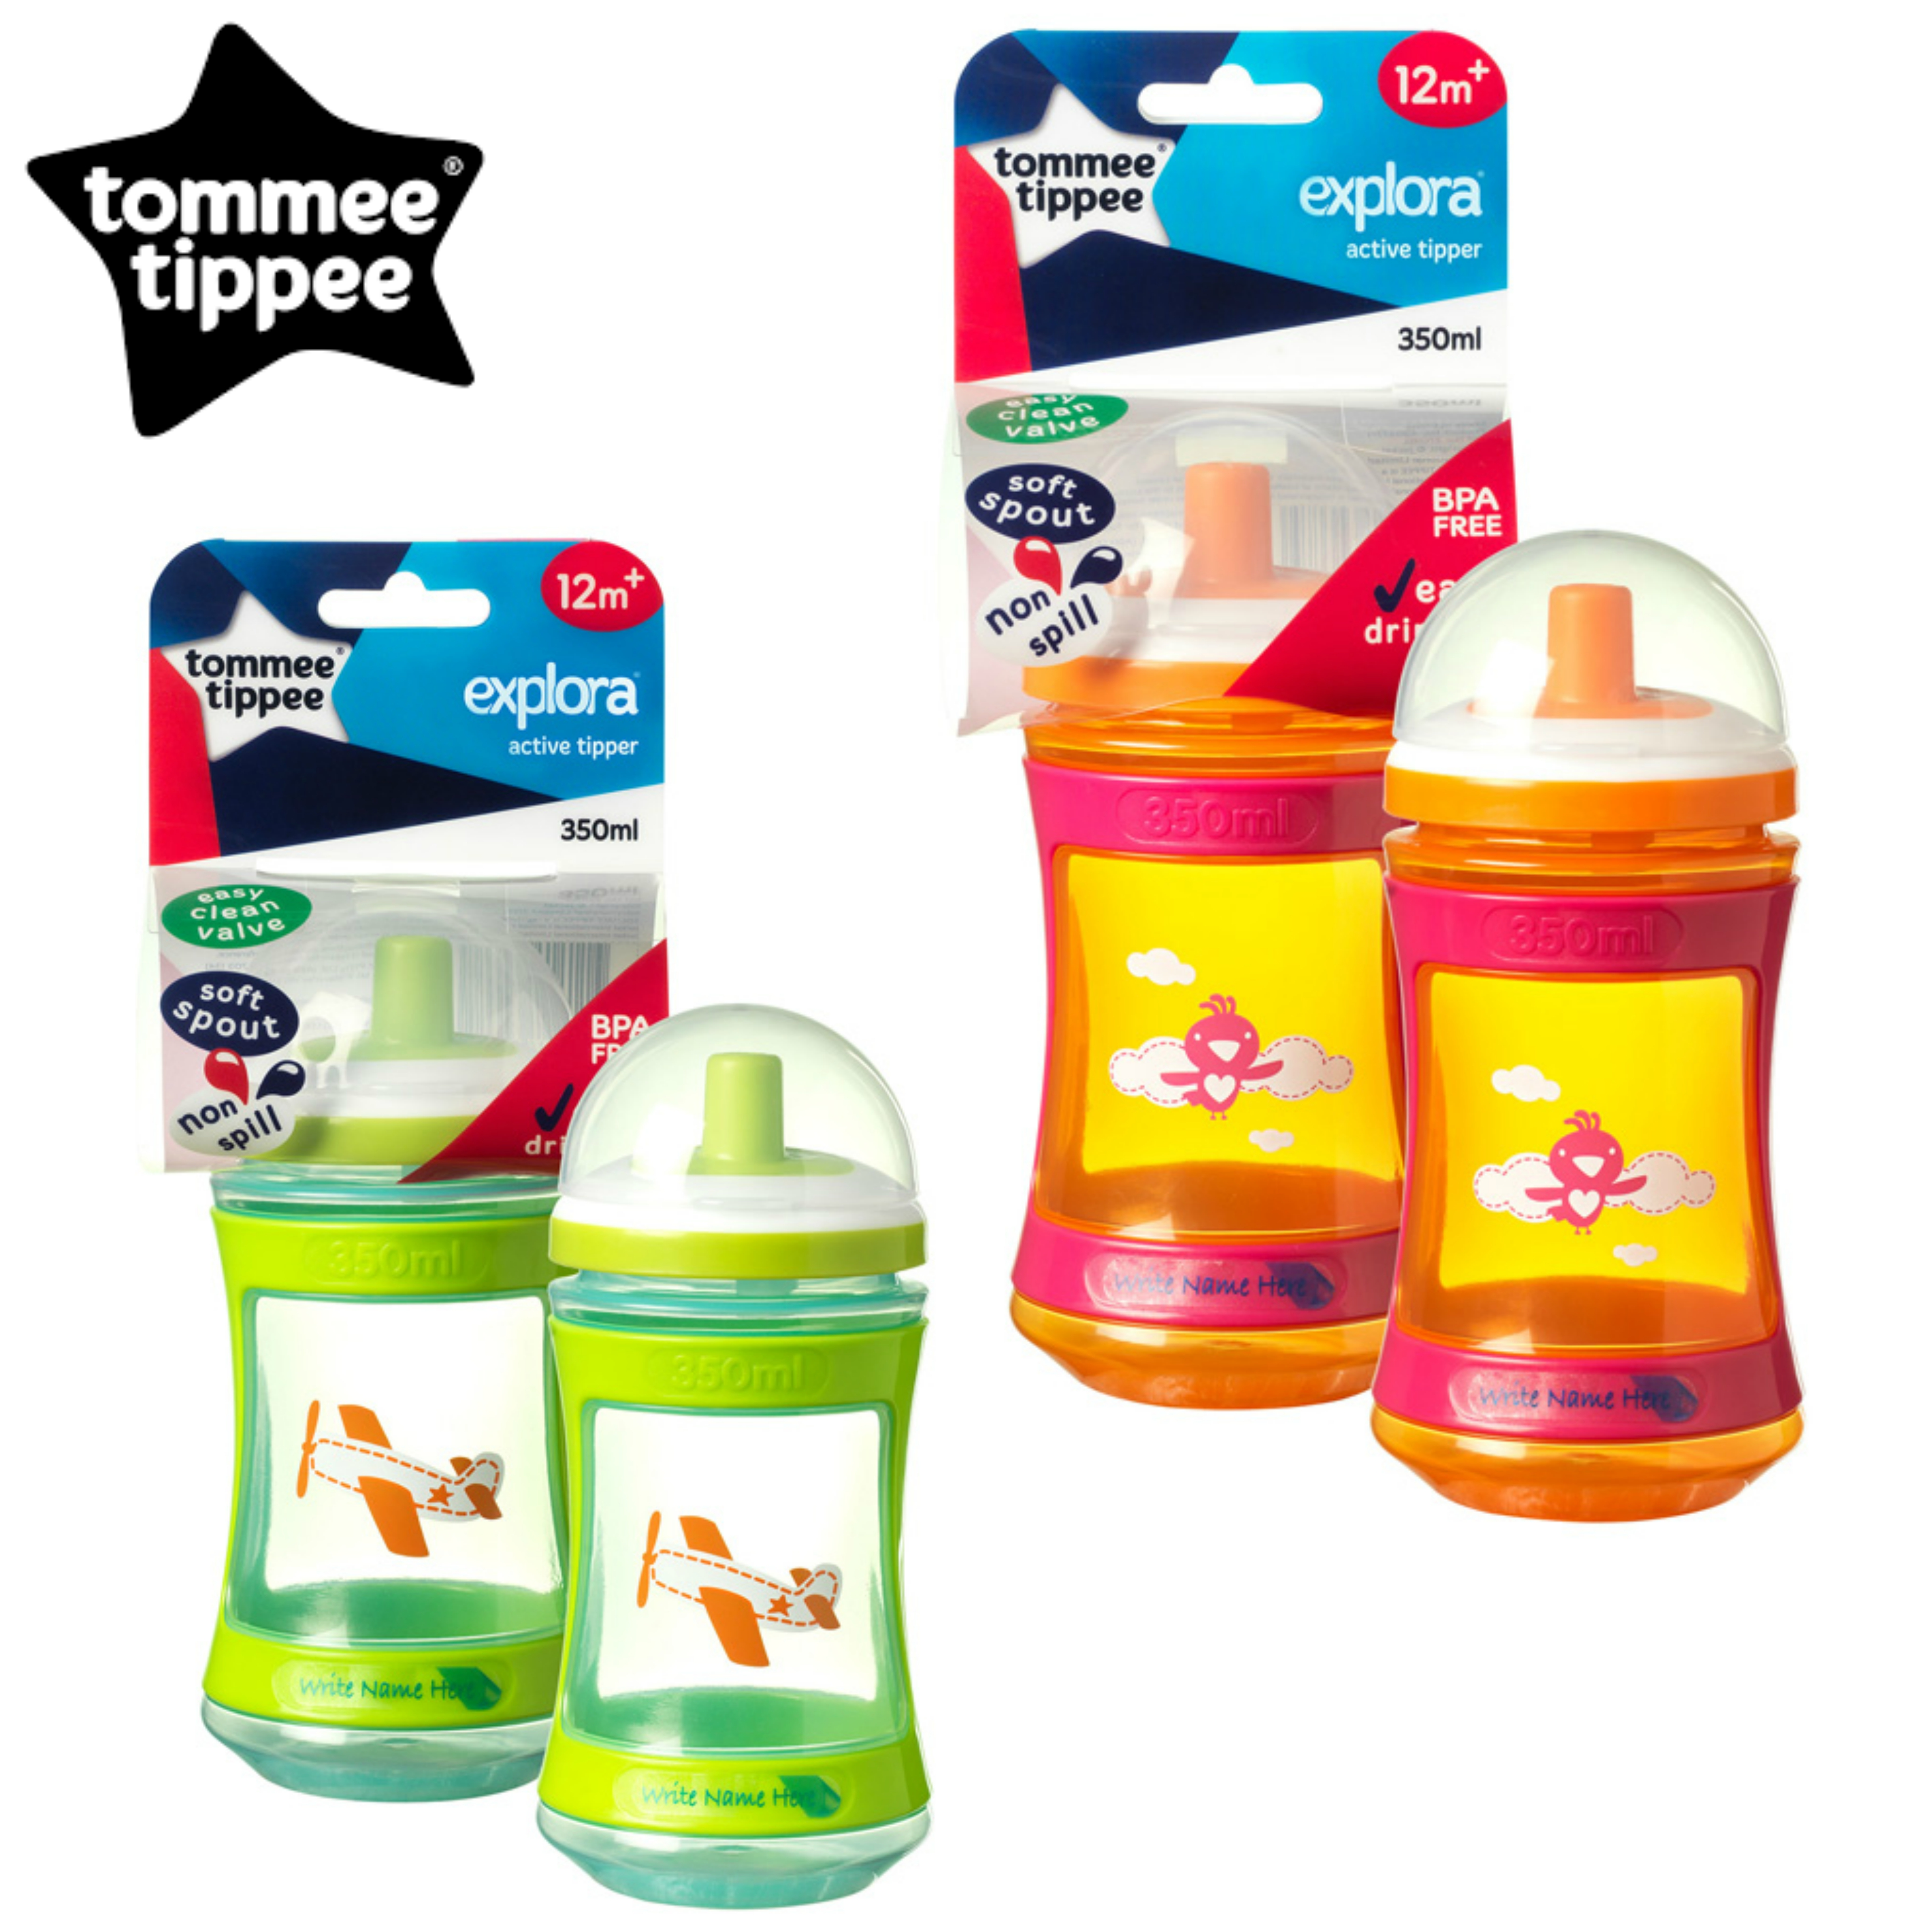 Tommee Tippee Discovera Active Tipper 12m+ | Choice of Design & Colour | 350ml | New